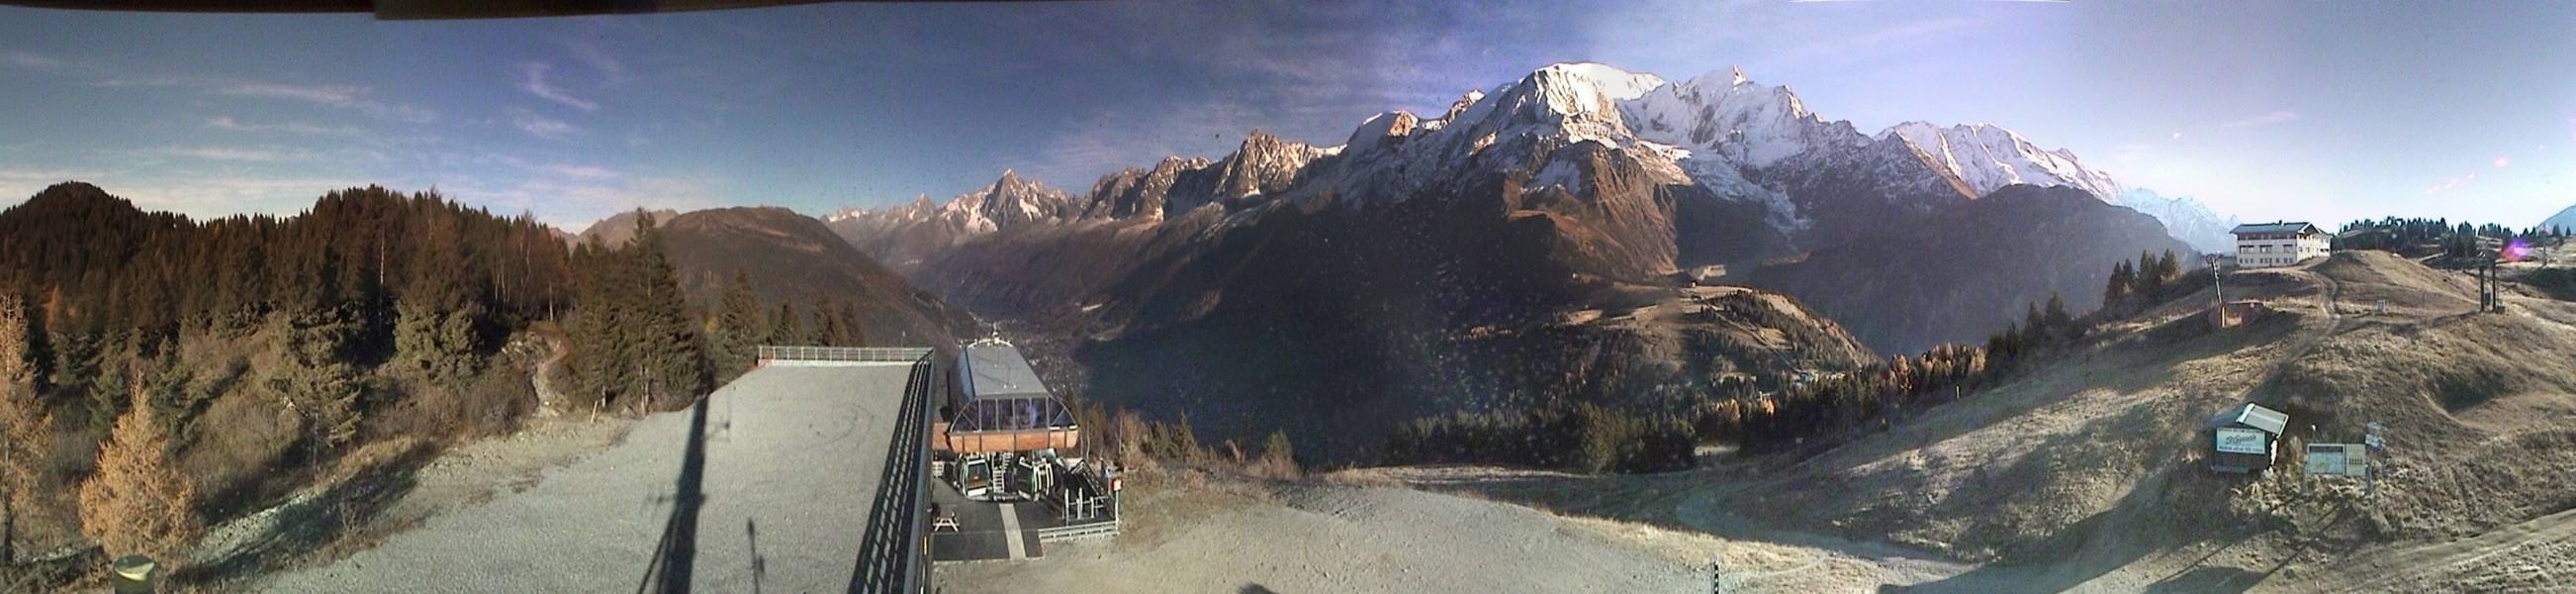 Panoramic Webcam at the Prarion gondola at 1850m, in the Les Houches Ski Area of Chamonix